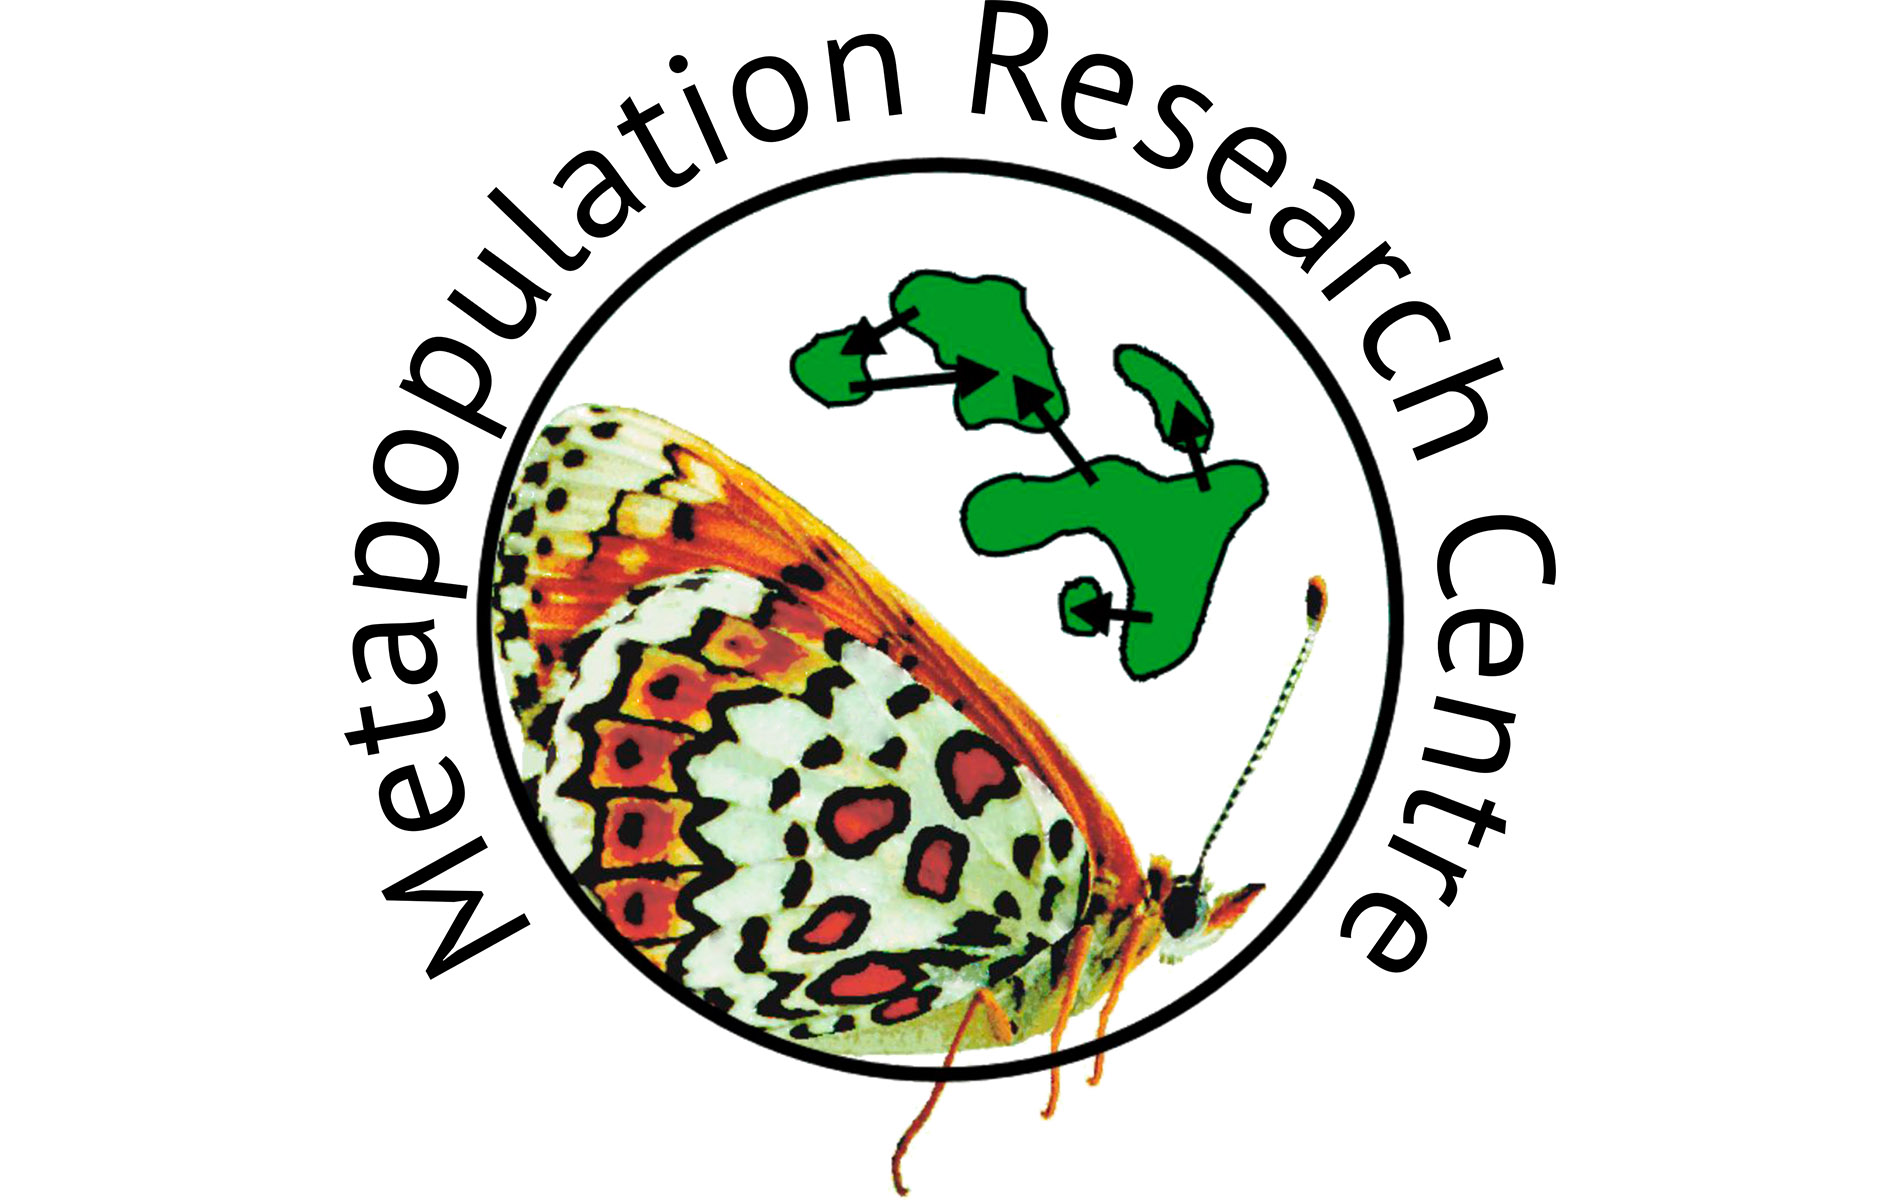 Metapopulation Research Centre (University of Helsinki)